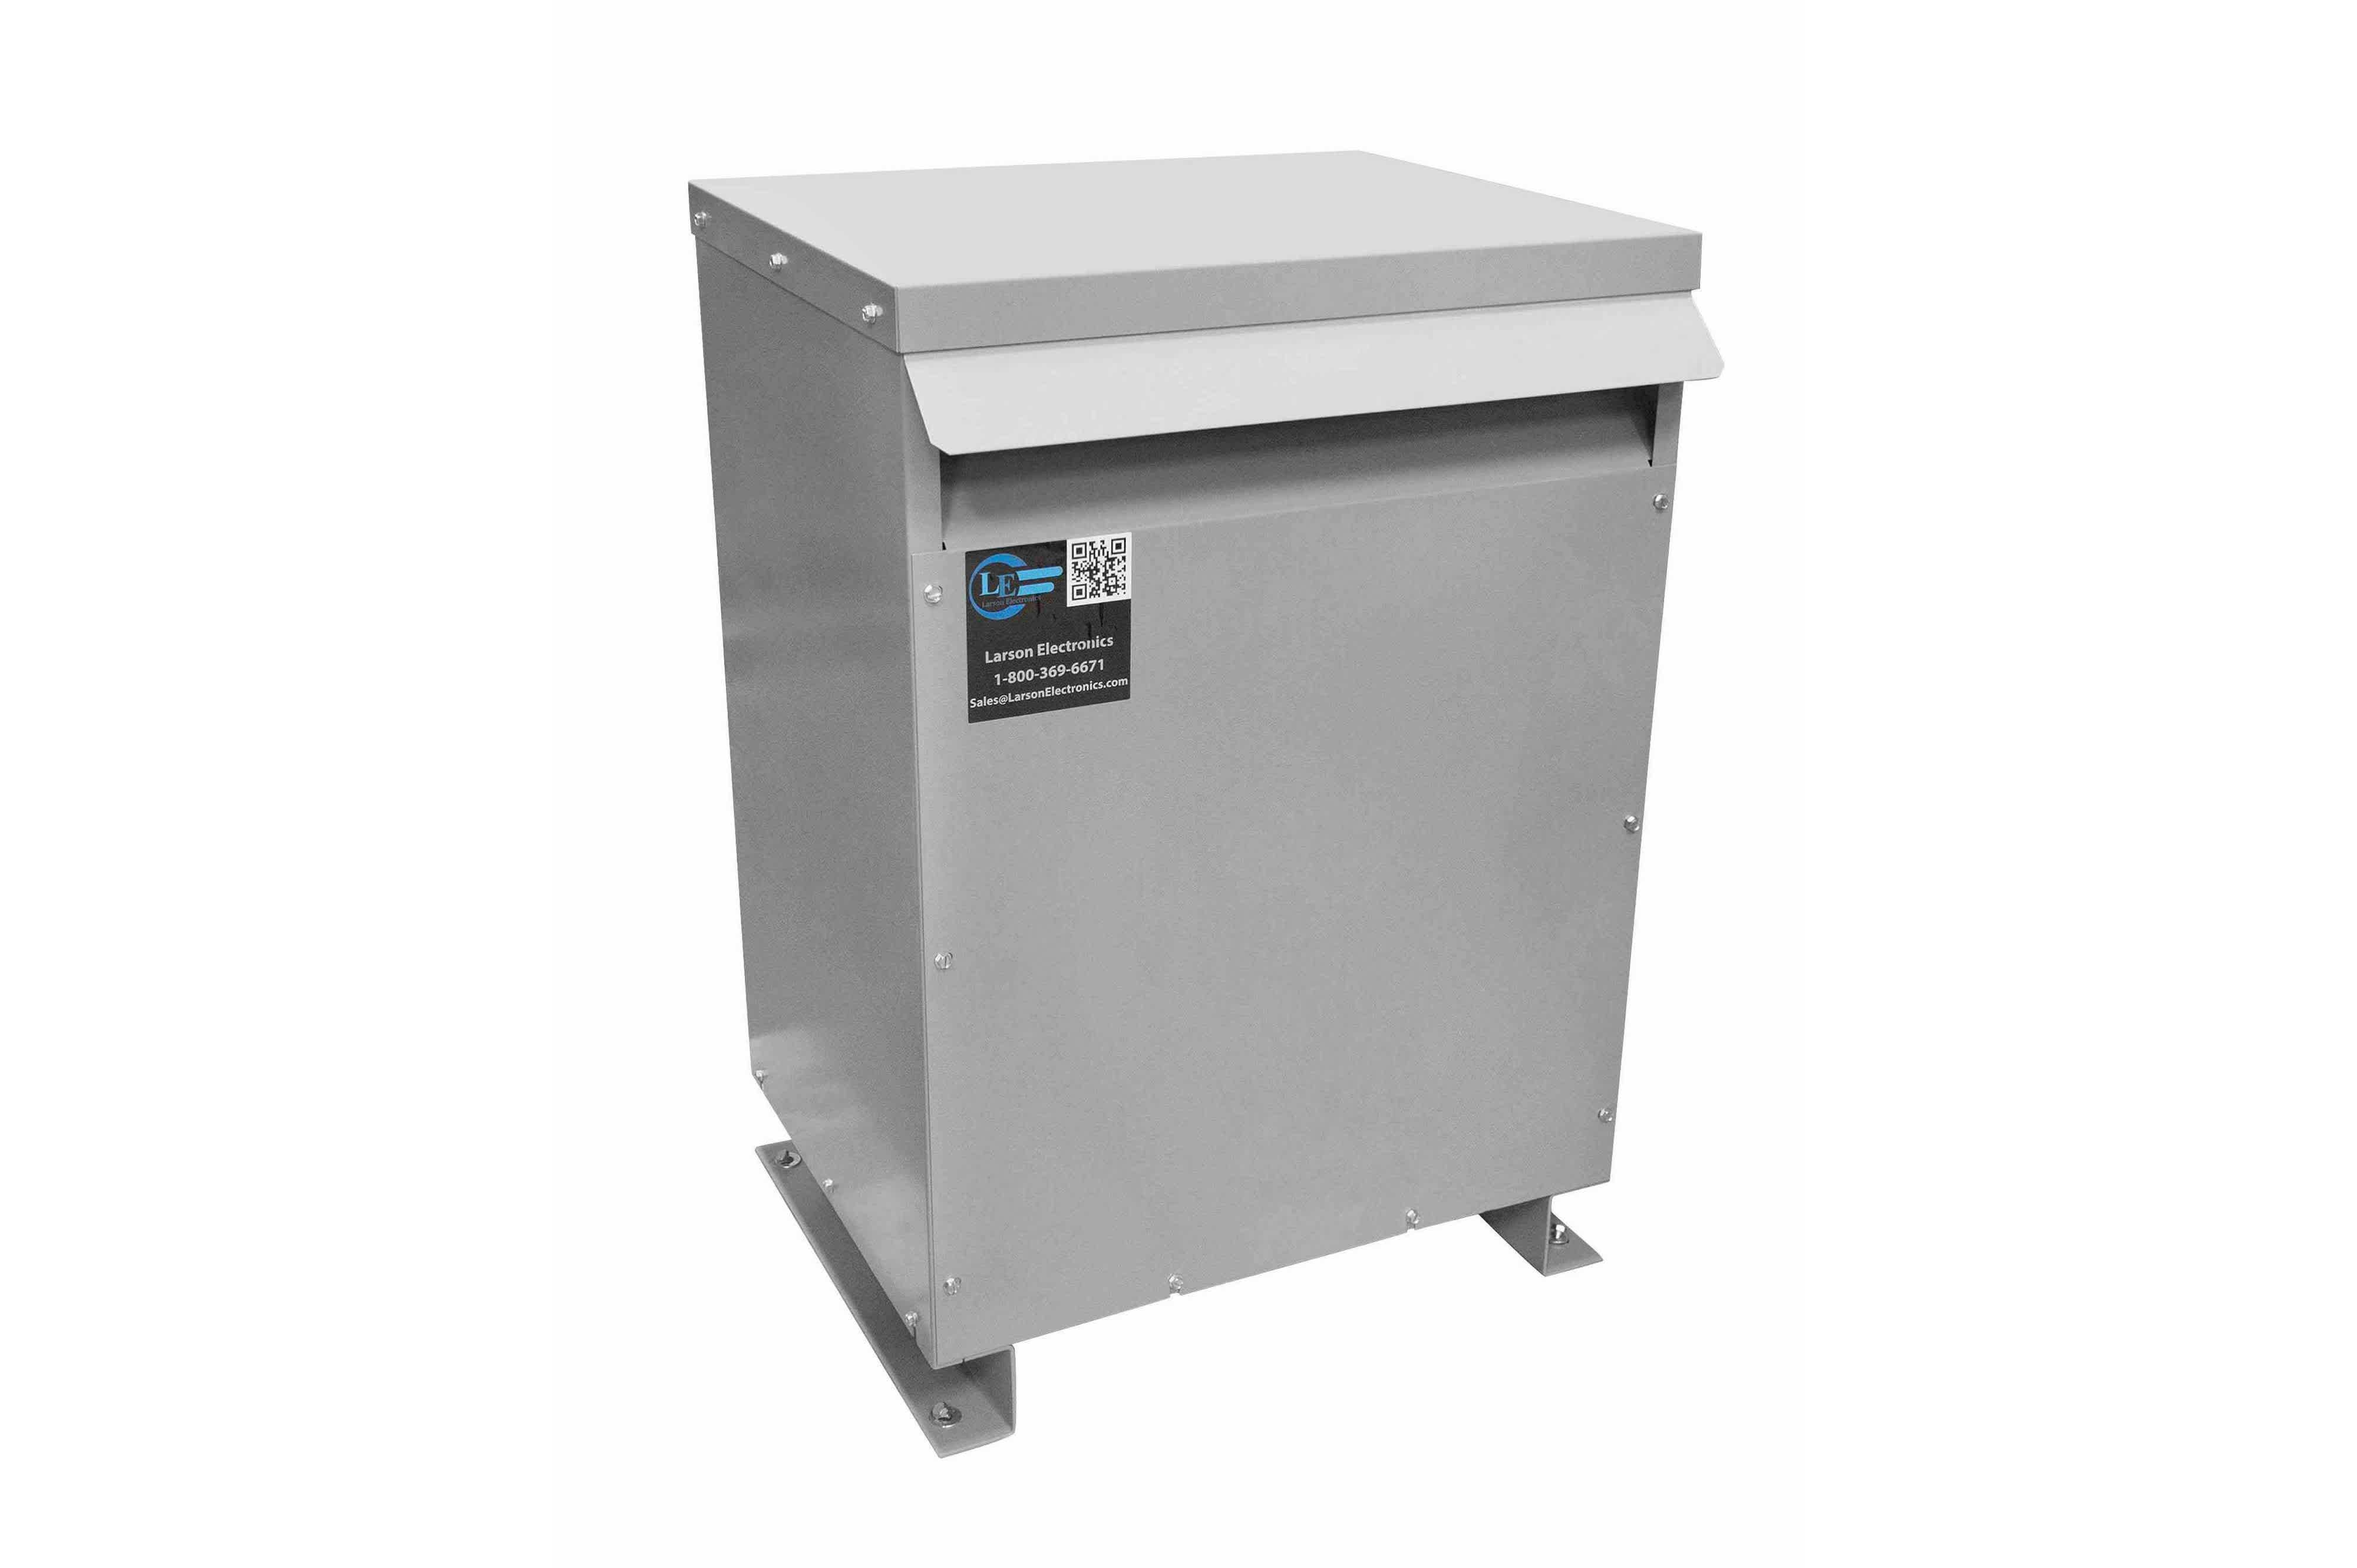 900 kVA 3PH Isolation Transformer, 600V Delta Primary, 380V Delta Secondary, N3R, Ventilated, 60 Hz